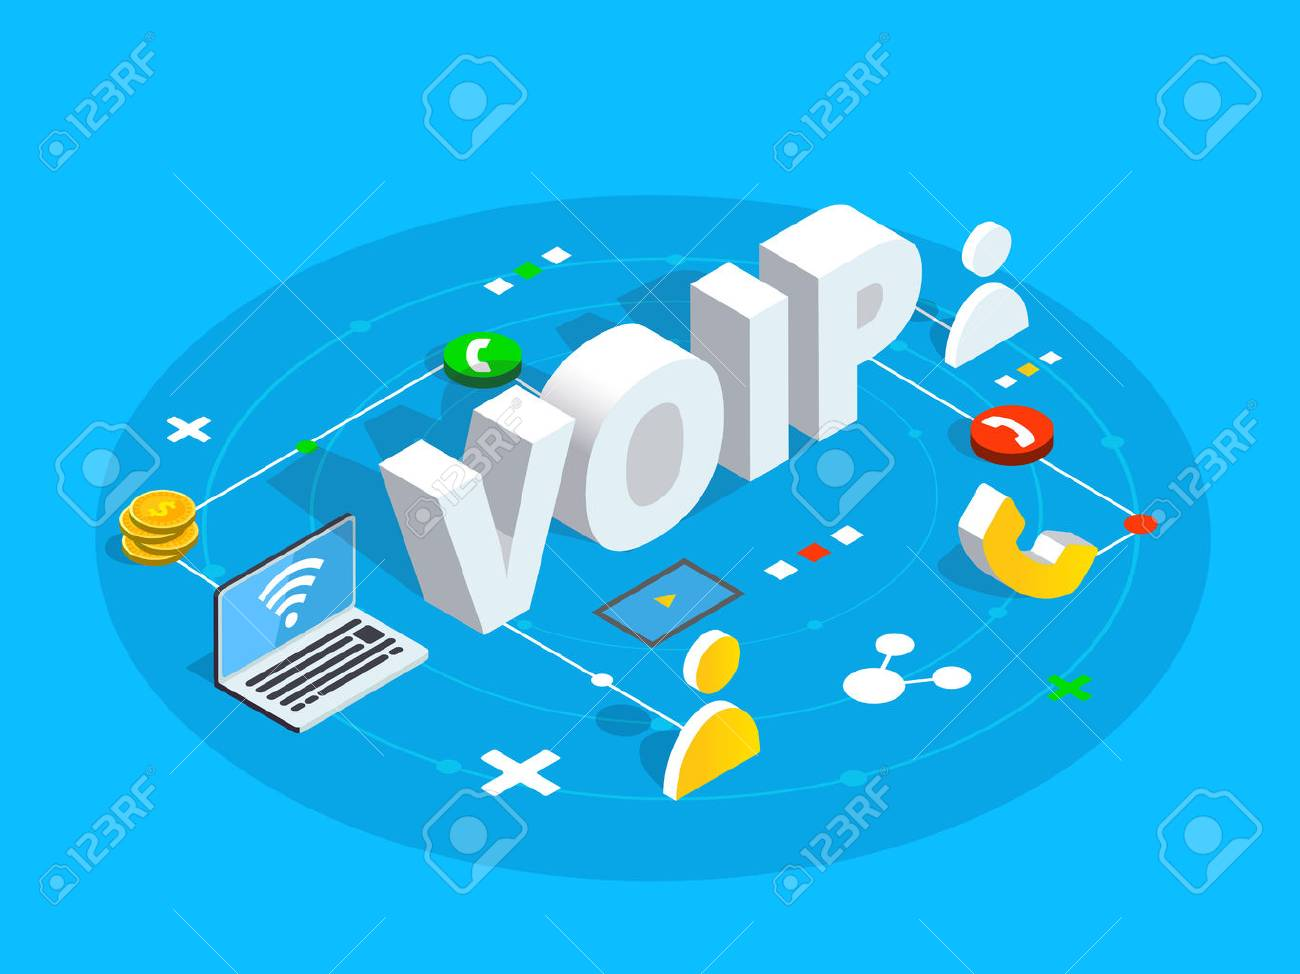 vector voip isometric vector concept illustration voice over ip or internet protocol technology background network phone call software